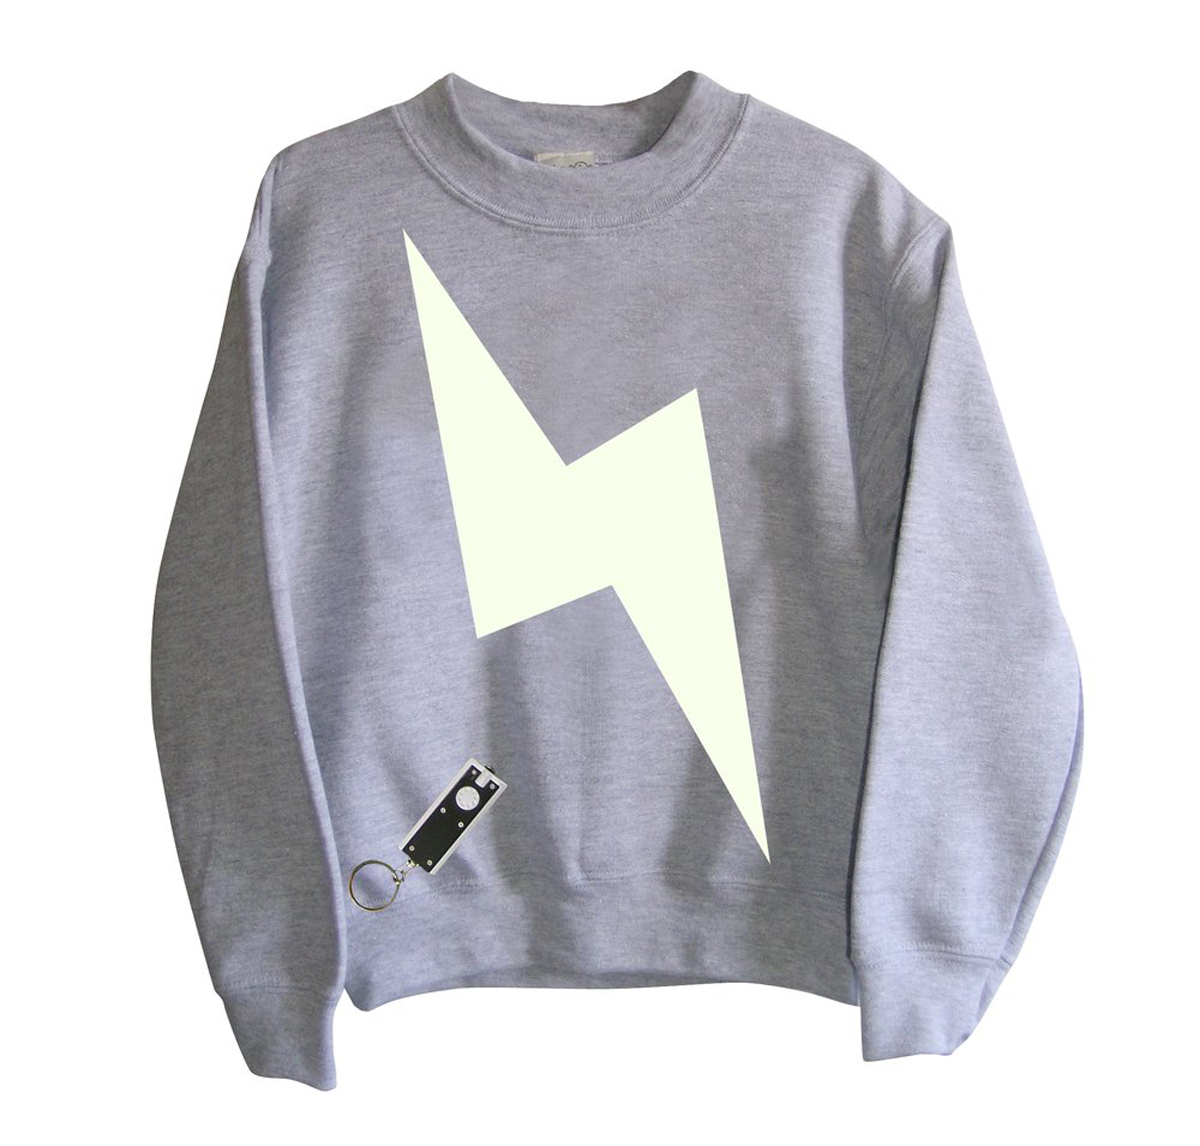 Little Mashers Tee Light Sweatshirt in Grey Lightning Bolt